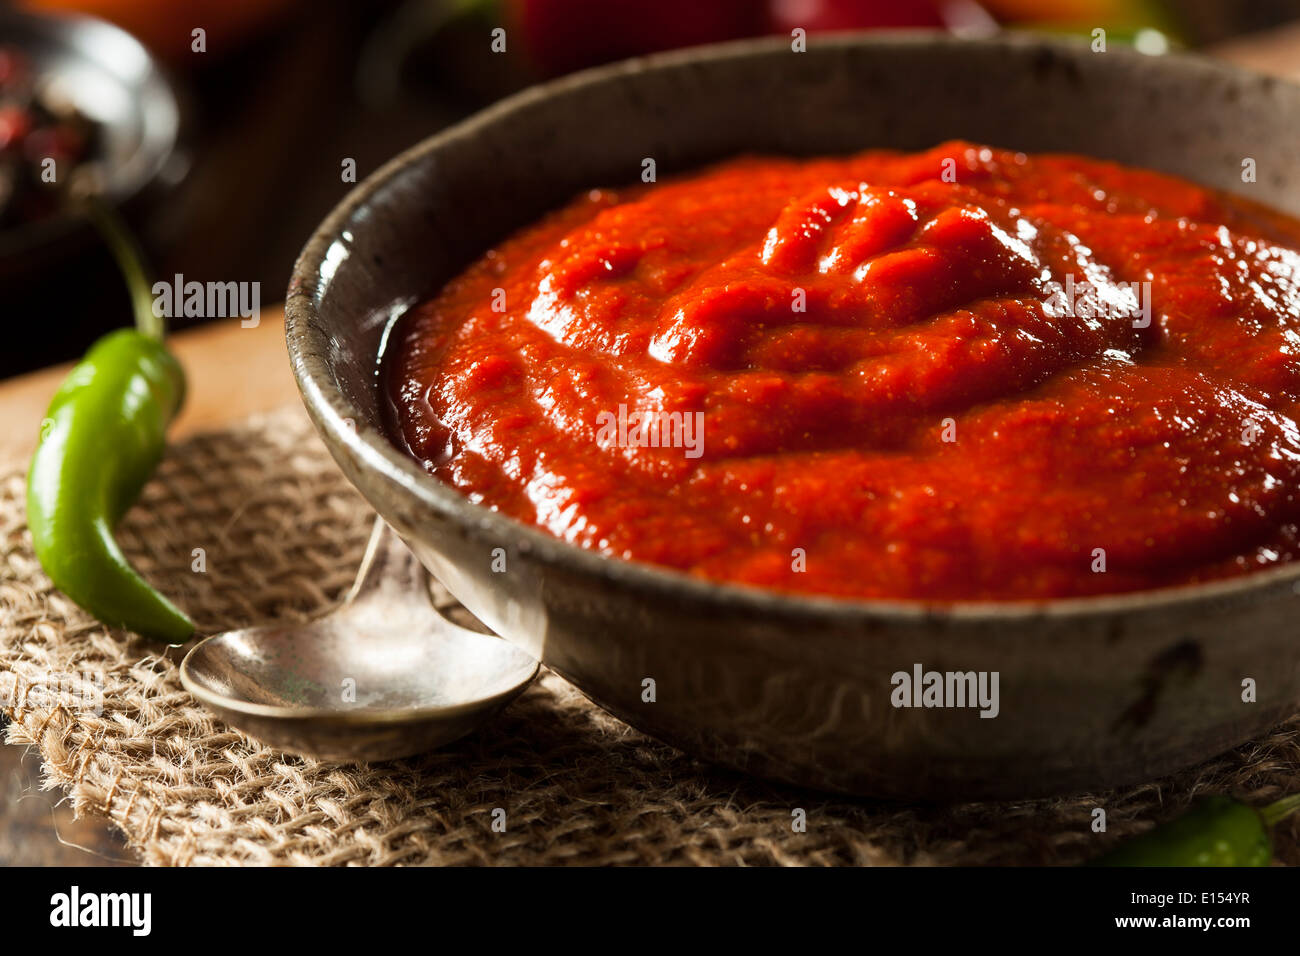 Hot Spicy Red Sriracha Sauce in a Bowl - Stock Image